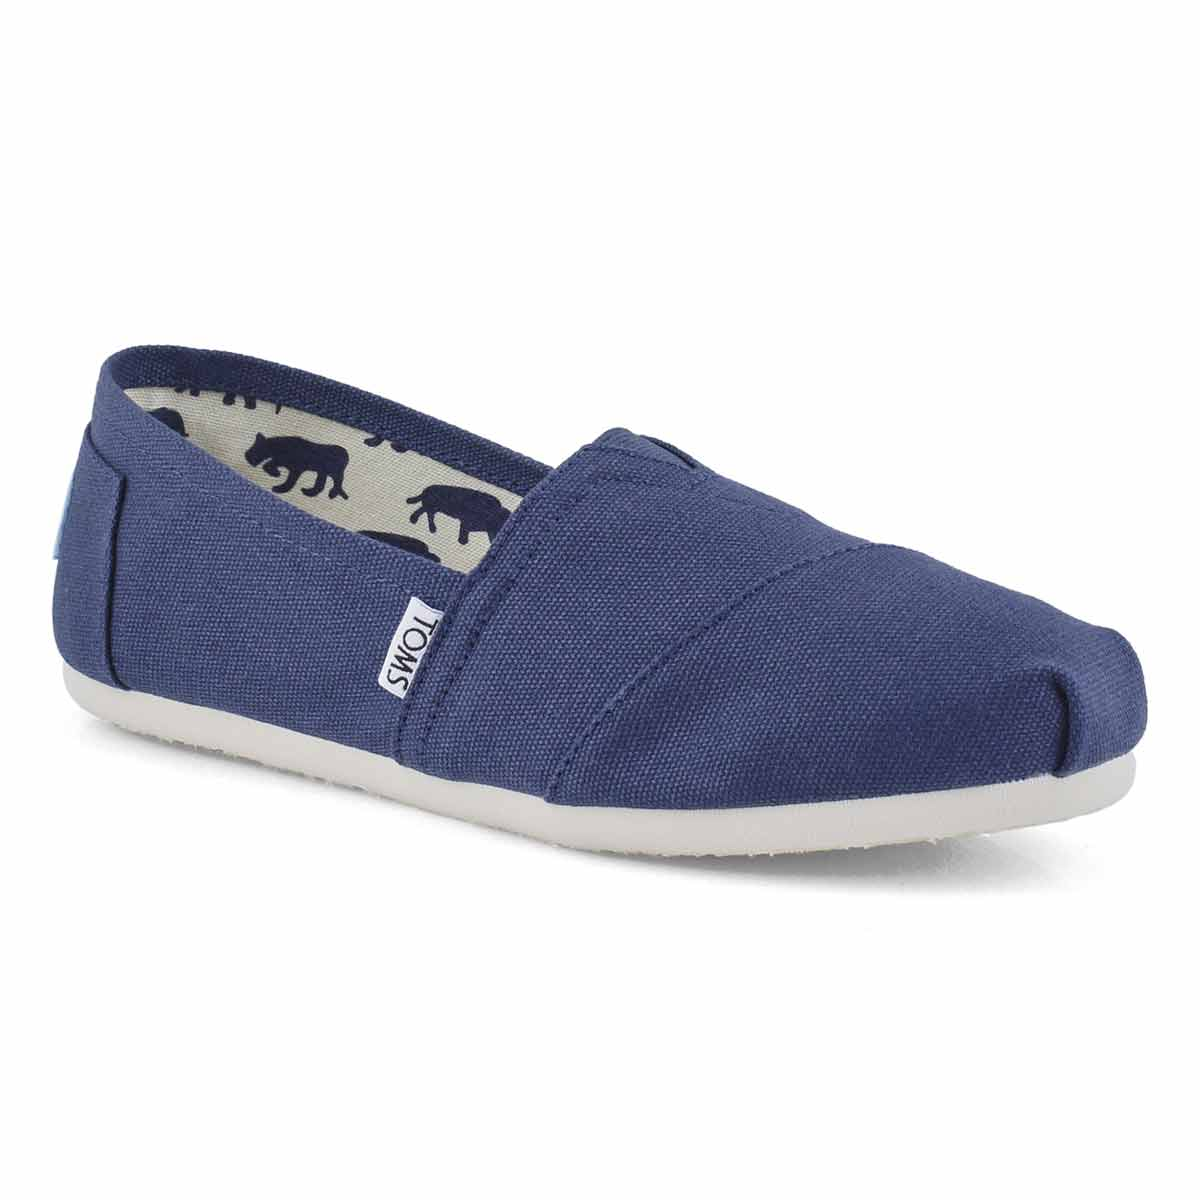 Women's CLASSIC navy canvas loafers